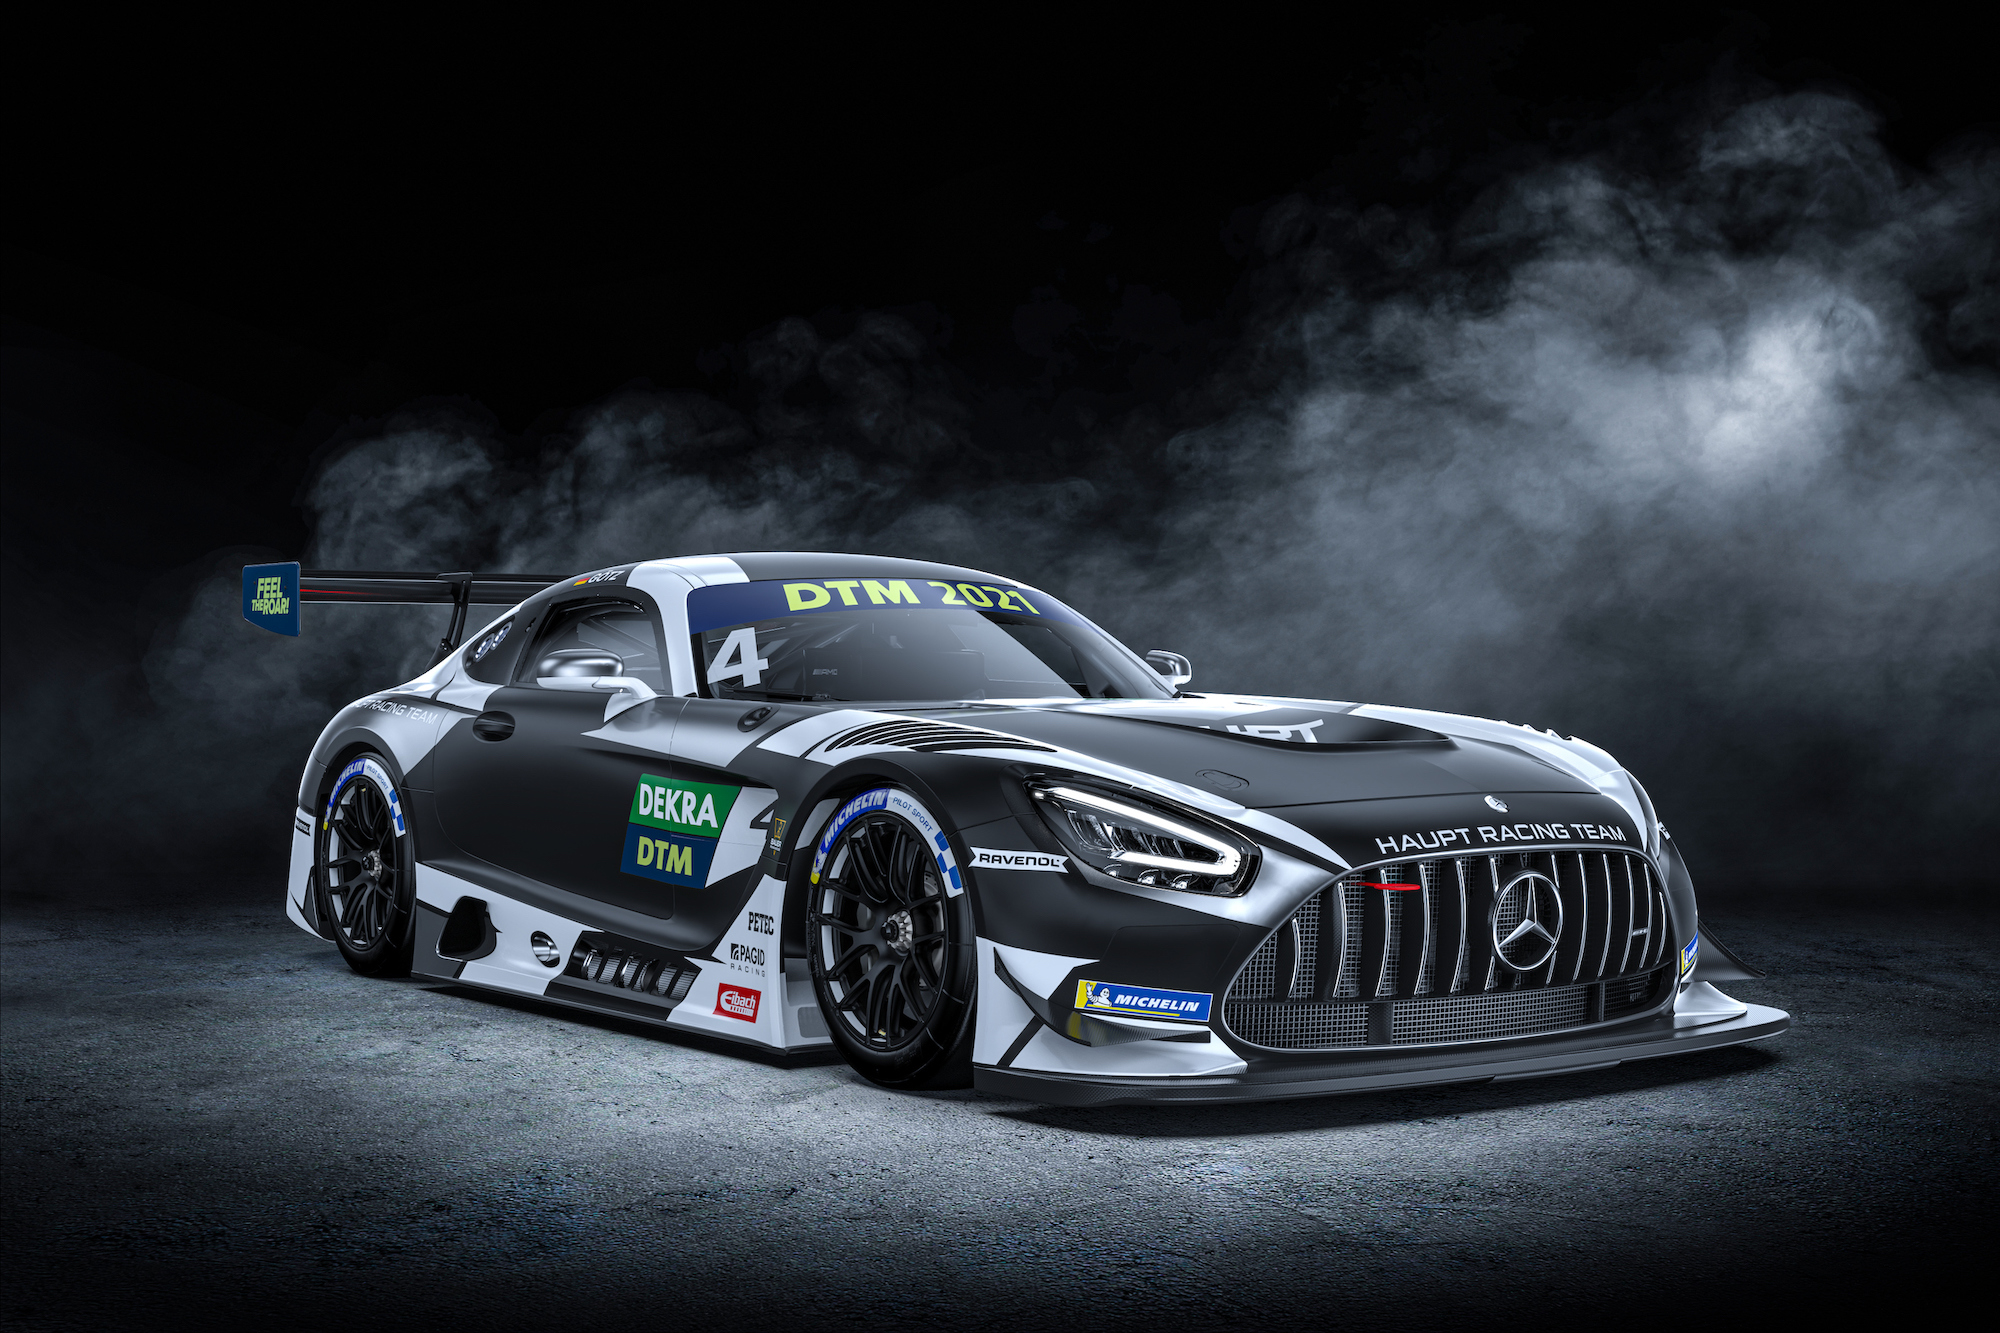 Mercedes-AMG sets sights on DTM racing with with five teams